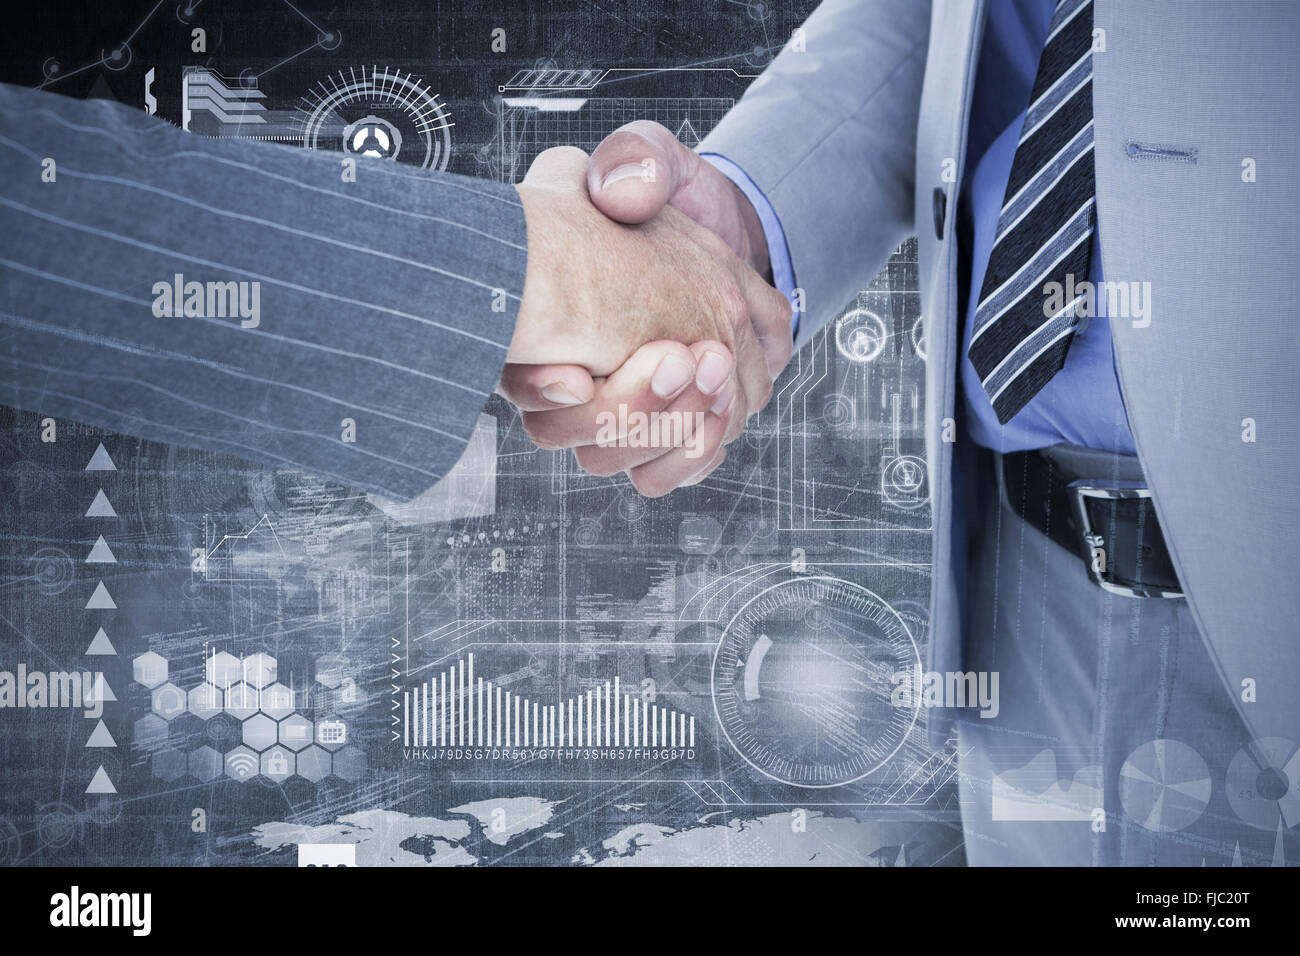 Composite image of  businessman shaking hands with a co worker - Stock Image